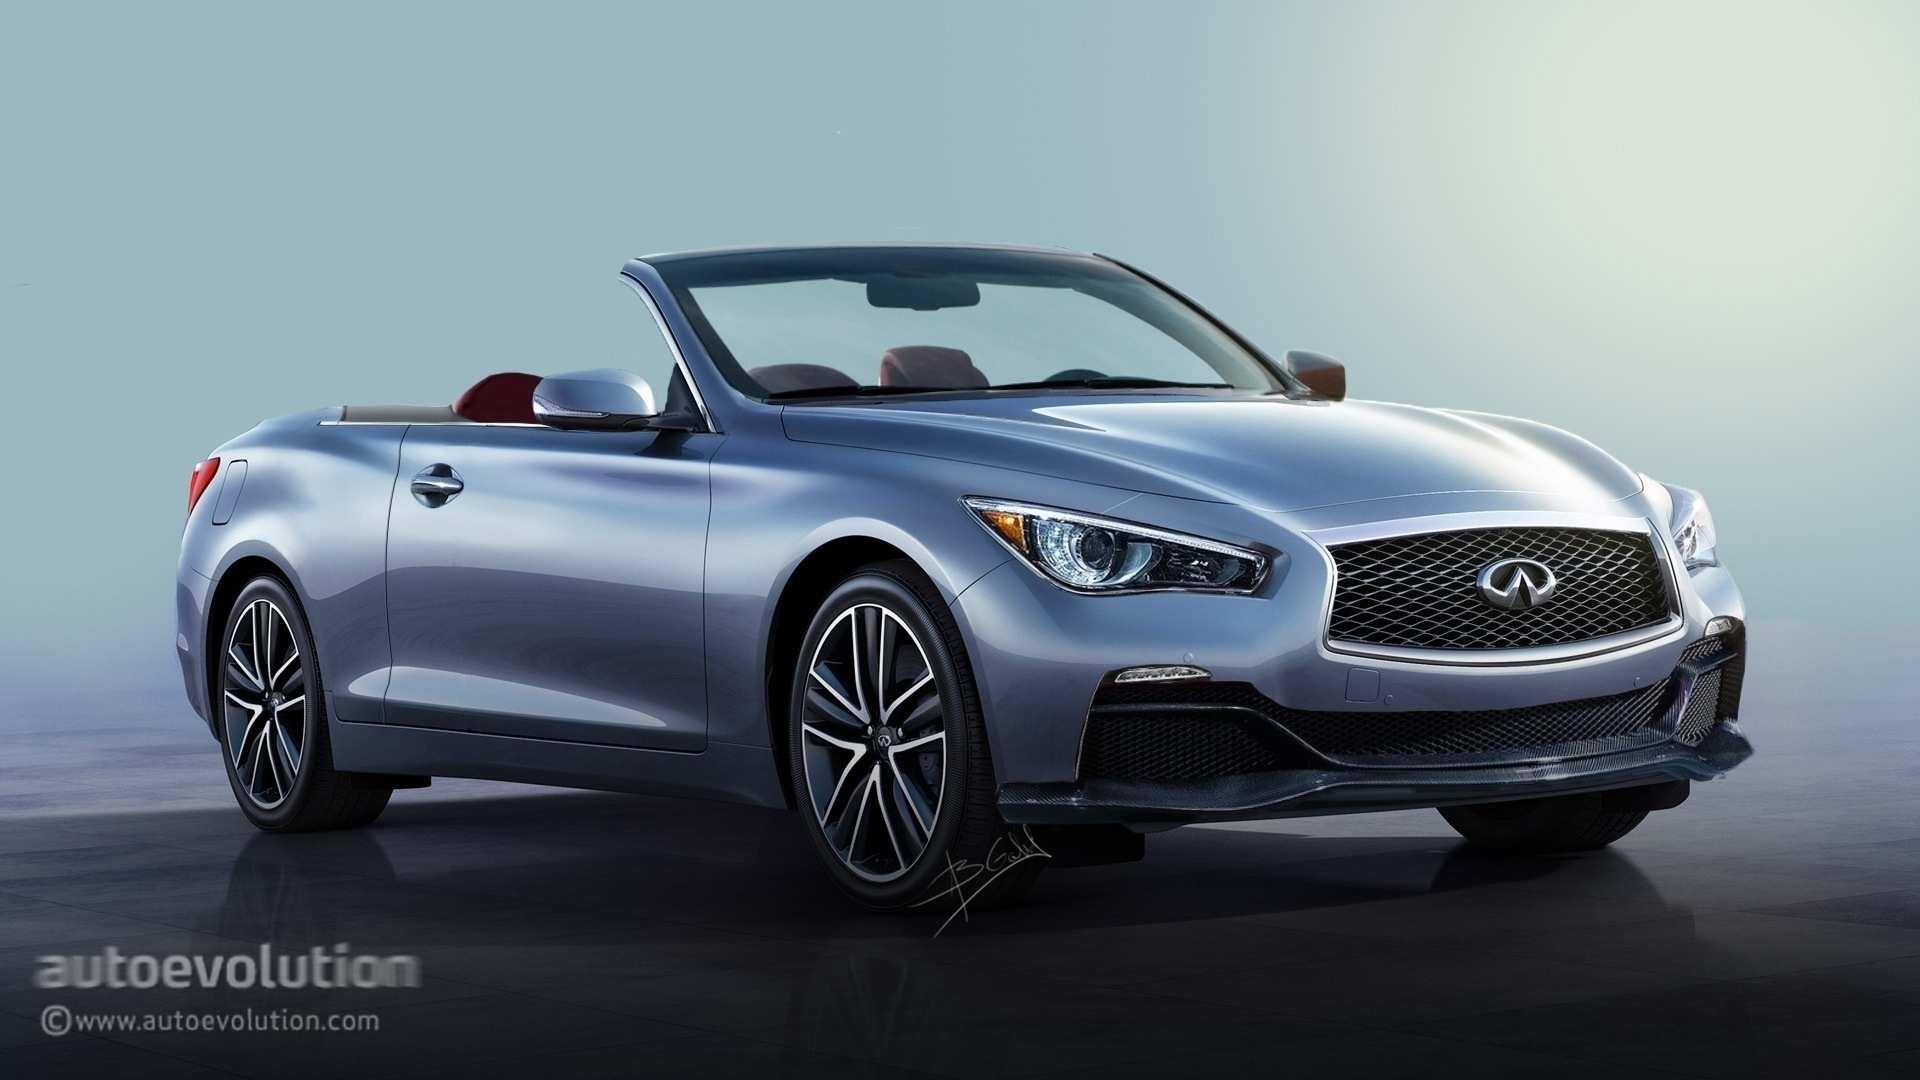 12 All New 2019 Infiniti Q60 Coupe Convertible Pictures